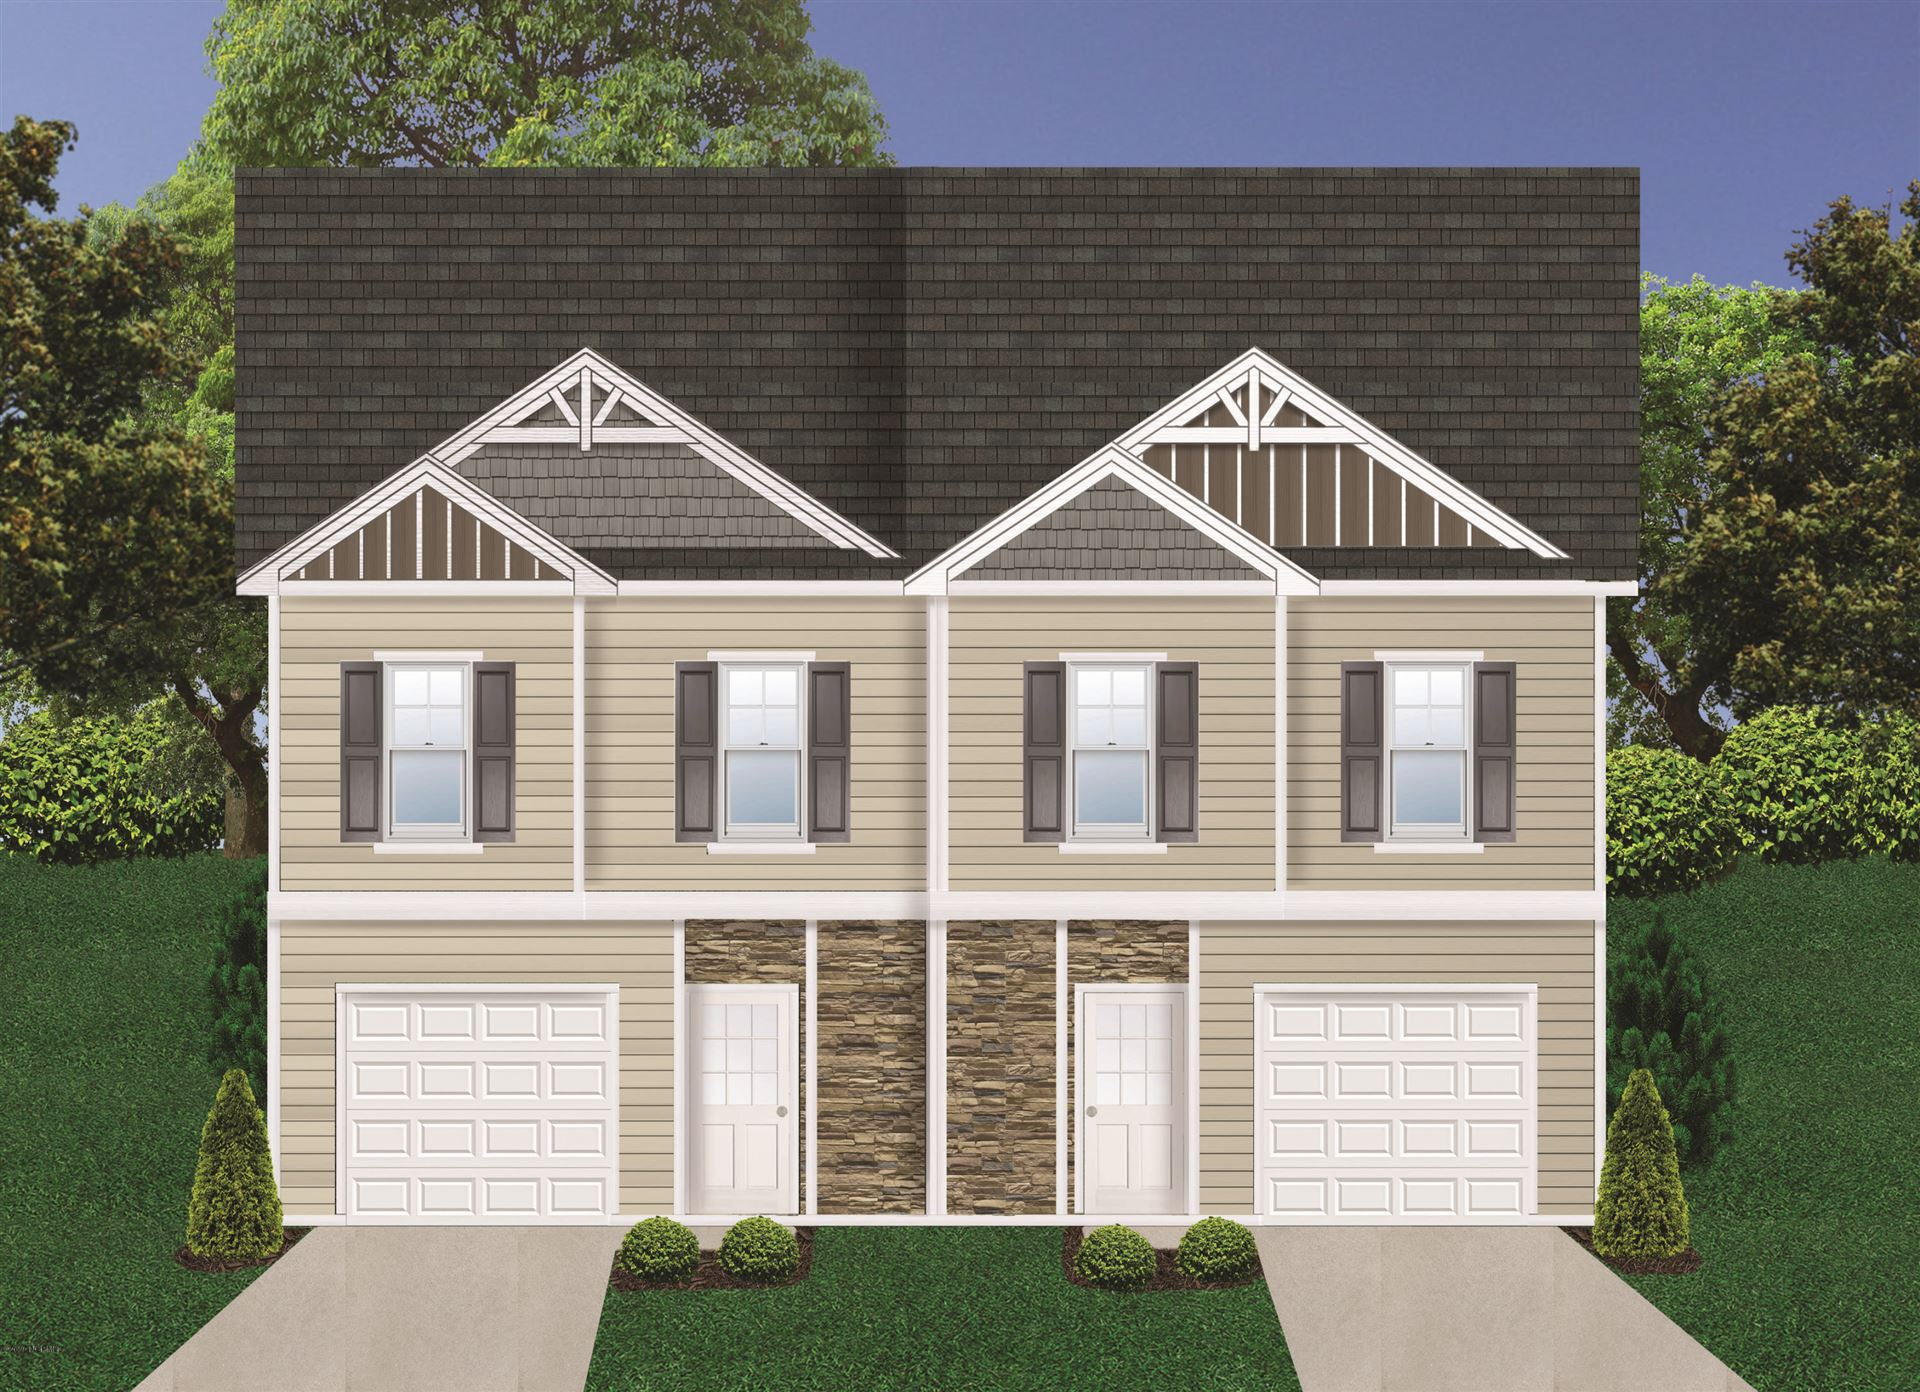 Photo for 423 Vandemere Court, Holly Ridge, NC 28445 (MLS # 100265179)